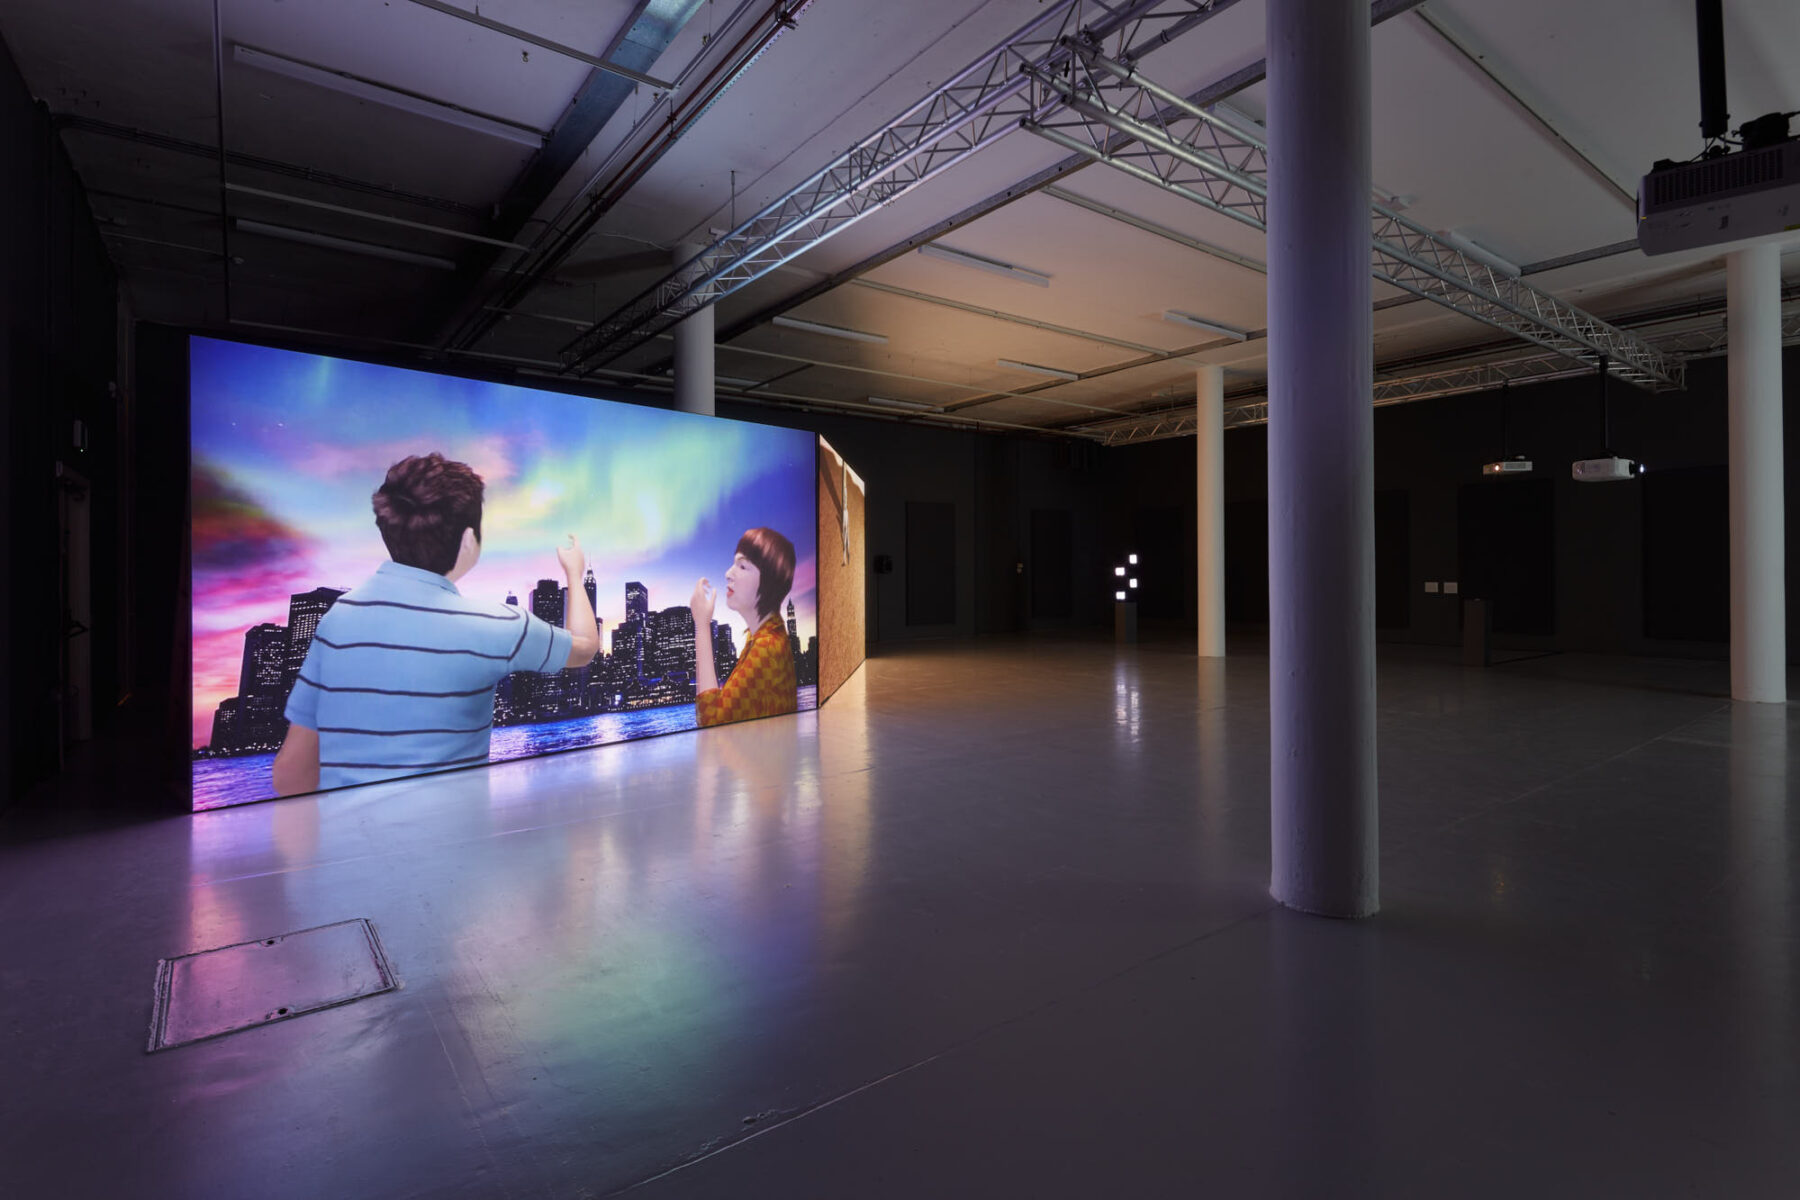 Installation view of Peggy Ahwesh exhibition Vision Machines at Spike Island